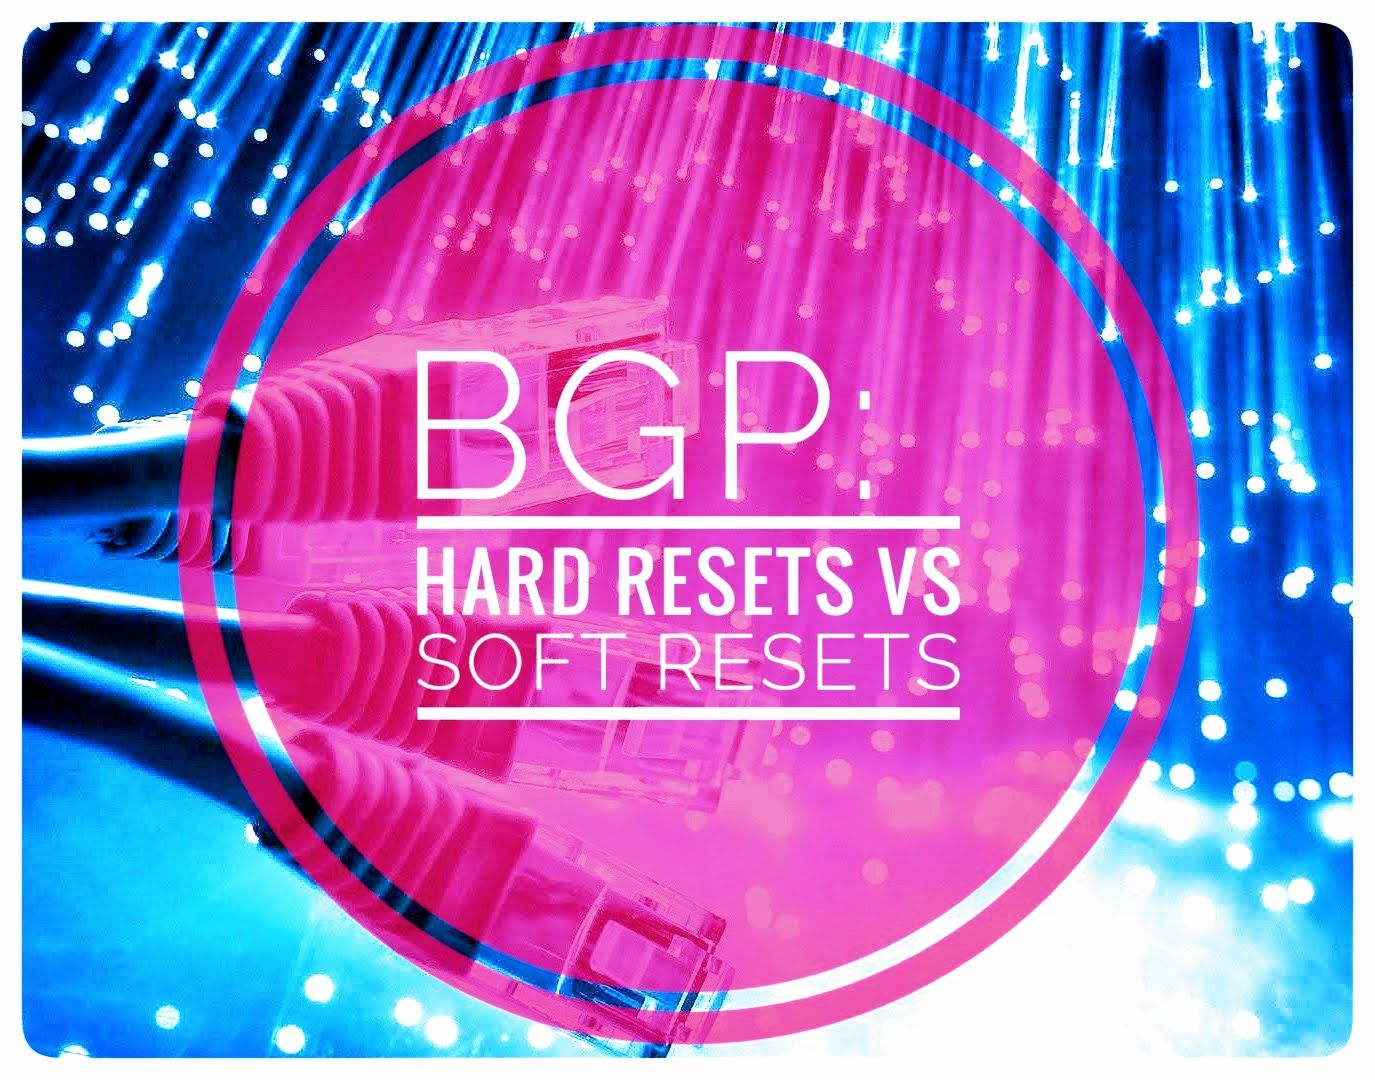 BGP Clears: Soft Resets vs Hard Resets, and why are they necessary?